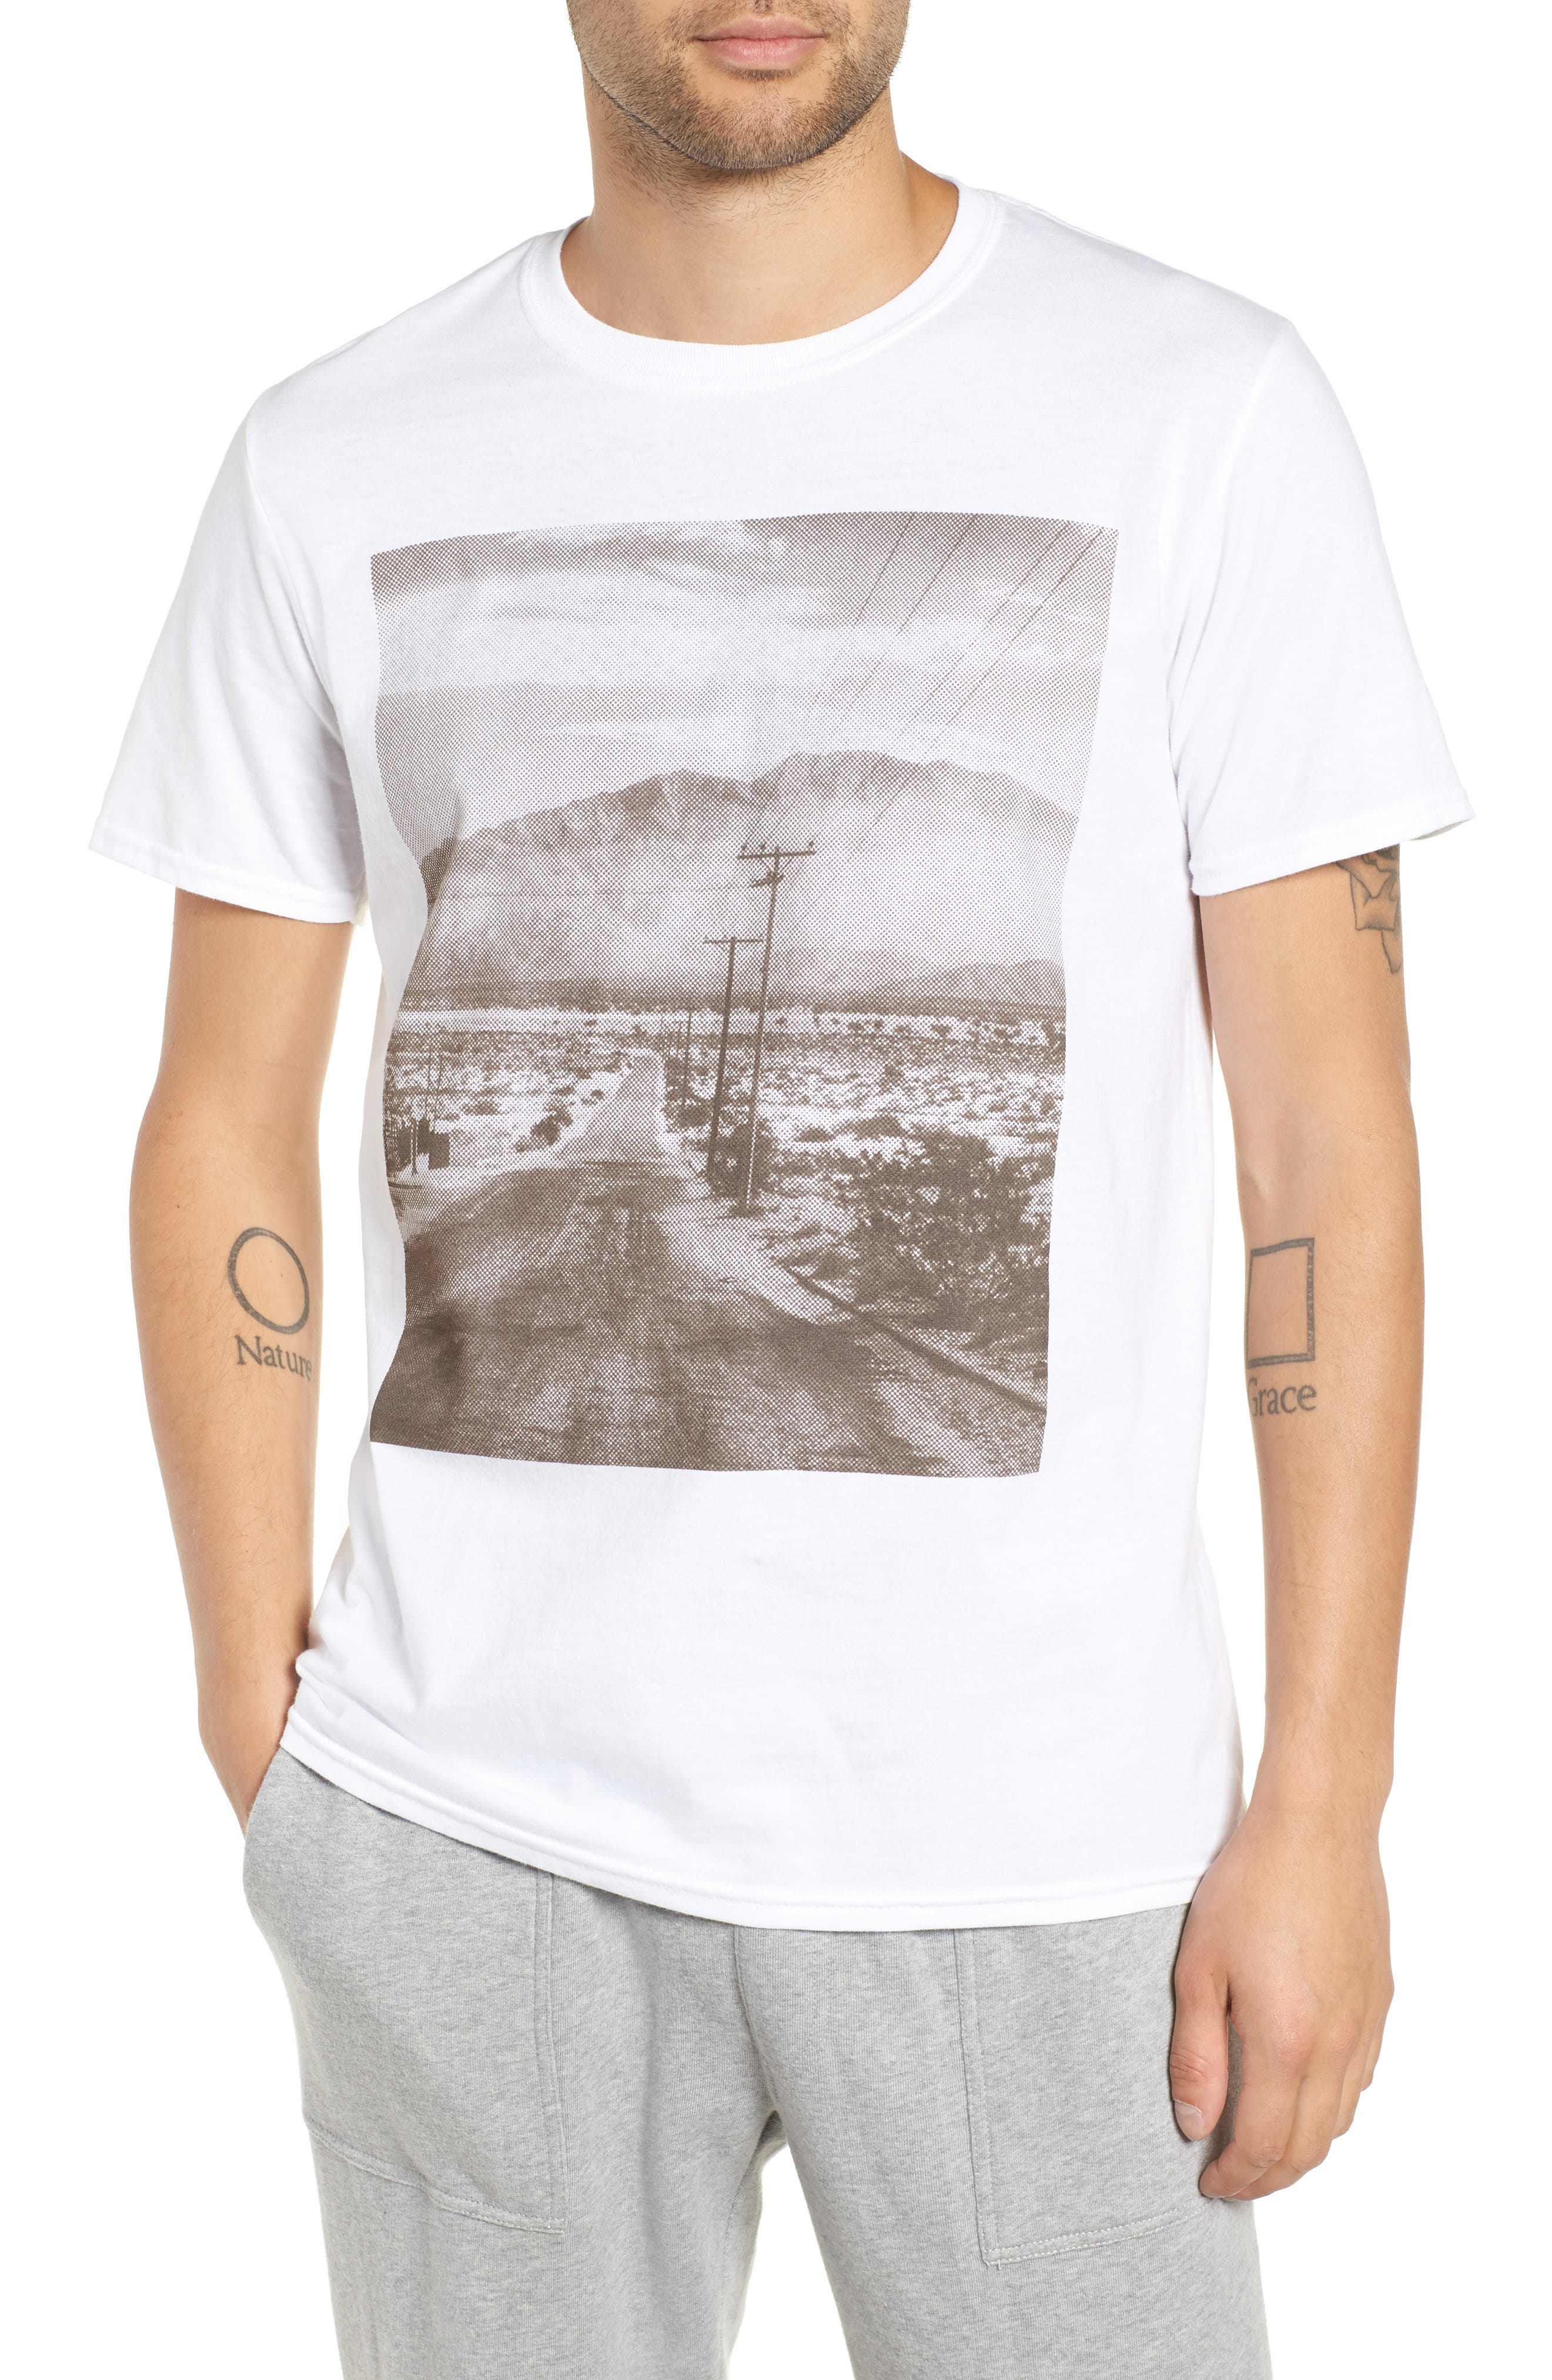 Deserted Road Photo T-Shirt,                         Main,                         color, 100